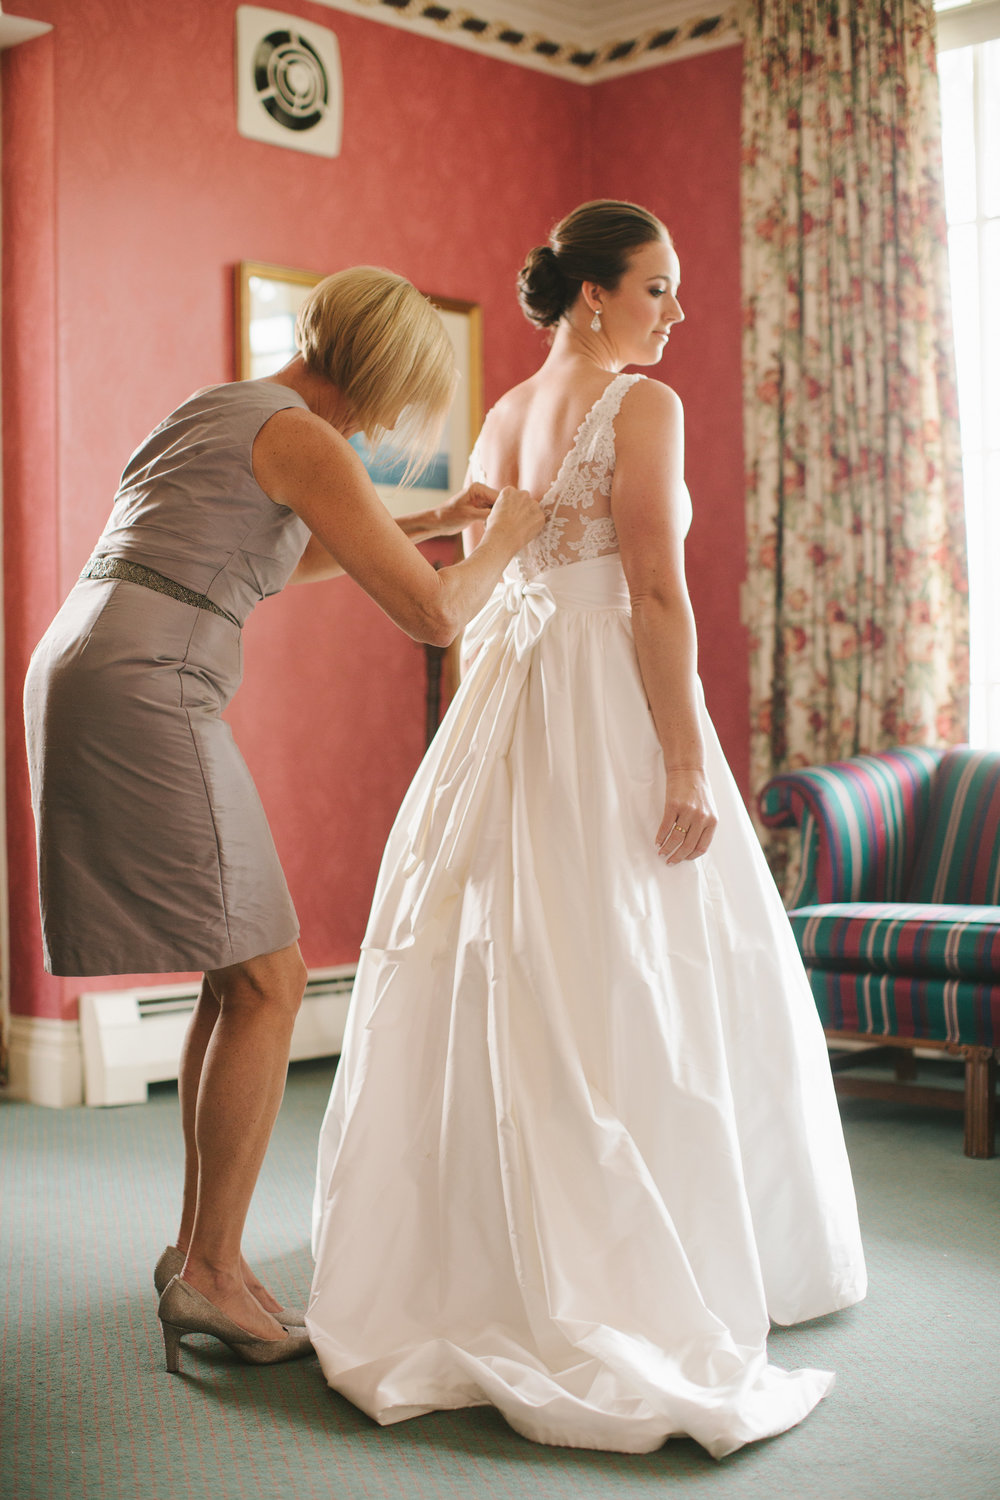 Meg and Chris are Married-Getting Ready-0114.jpg